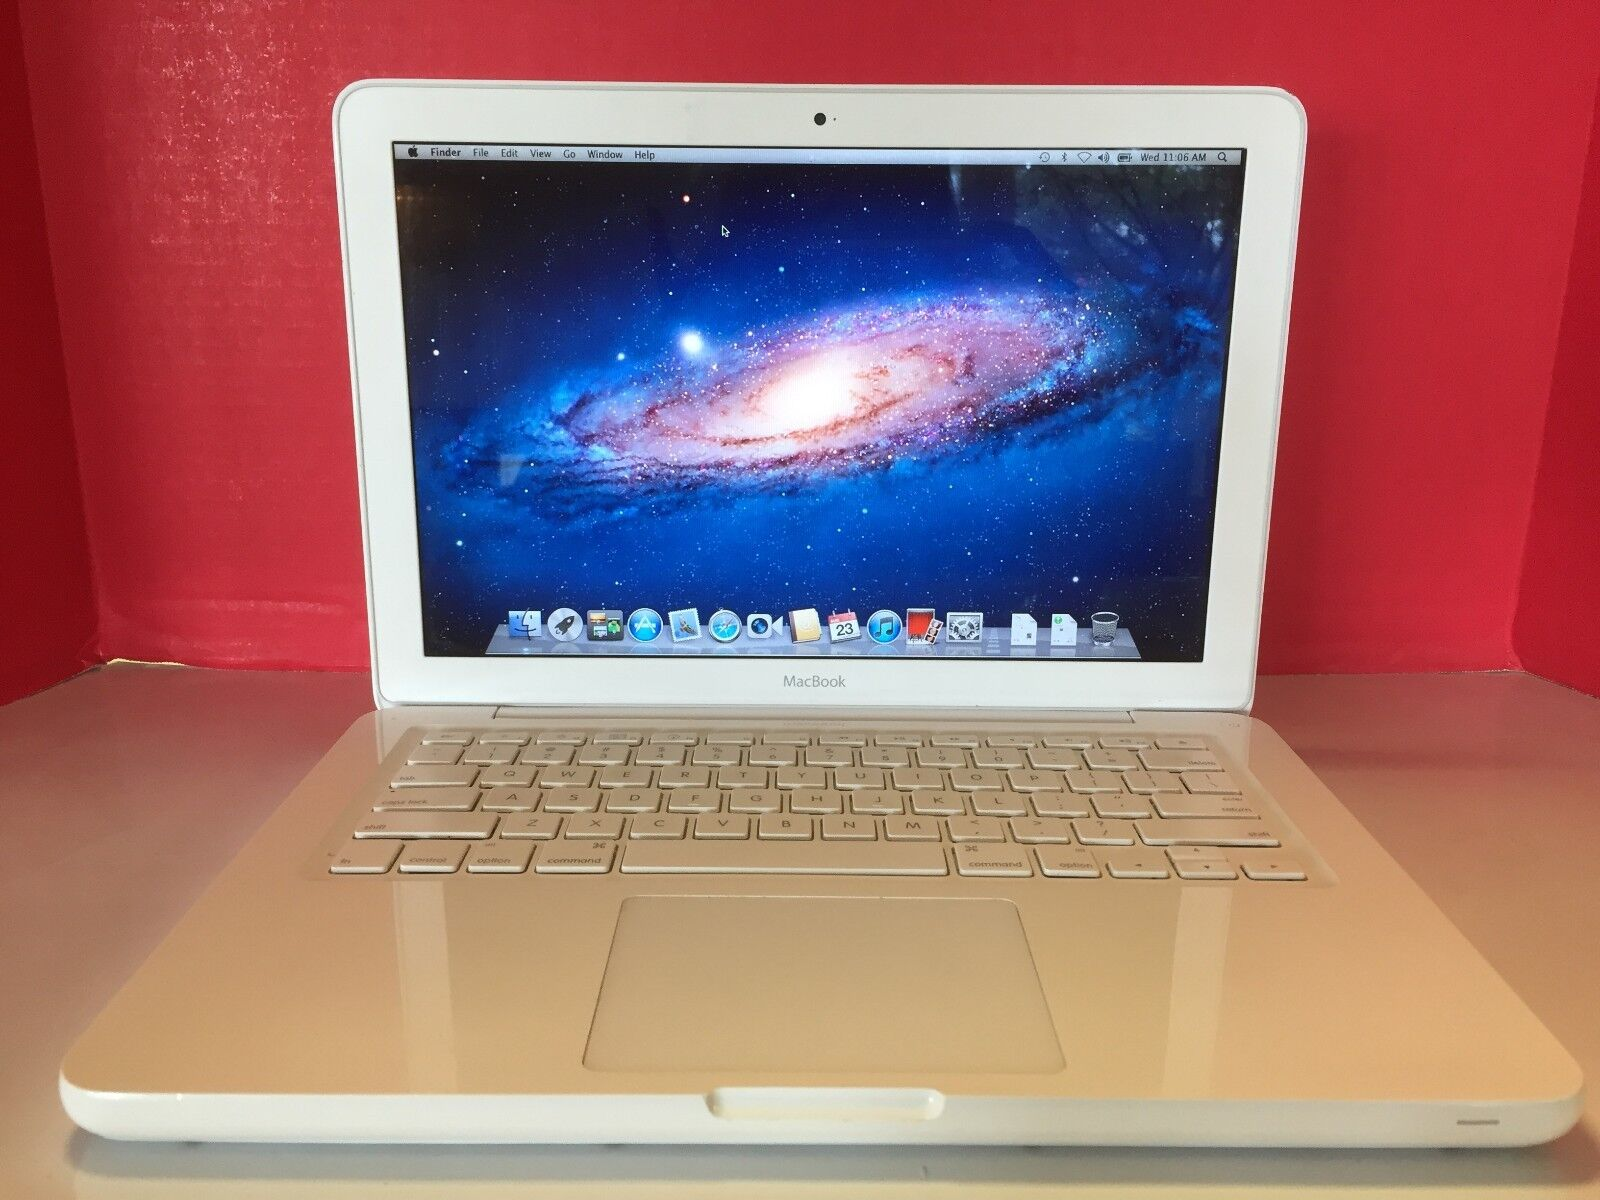 Macbook - Apple Macbook 2010 A1342 Unibody 2.4GHz 320GB 4GB EXCELLENT CONDITION